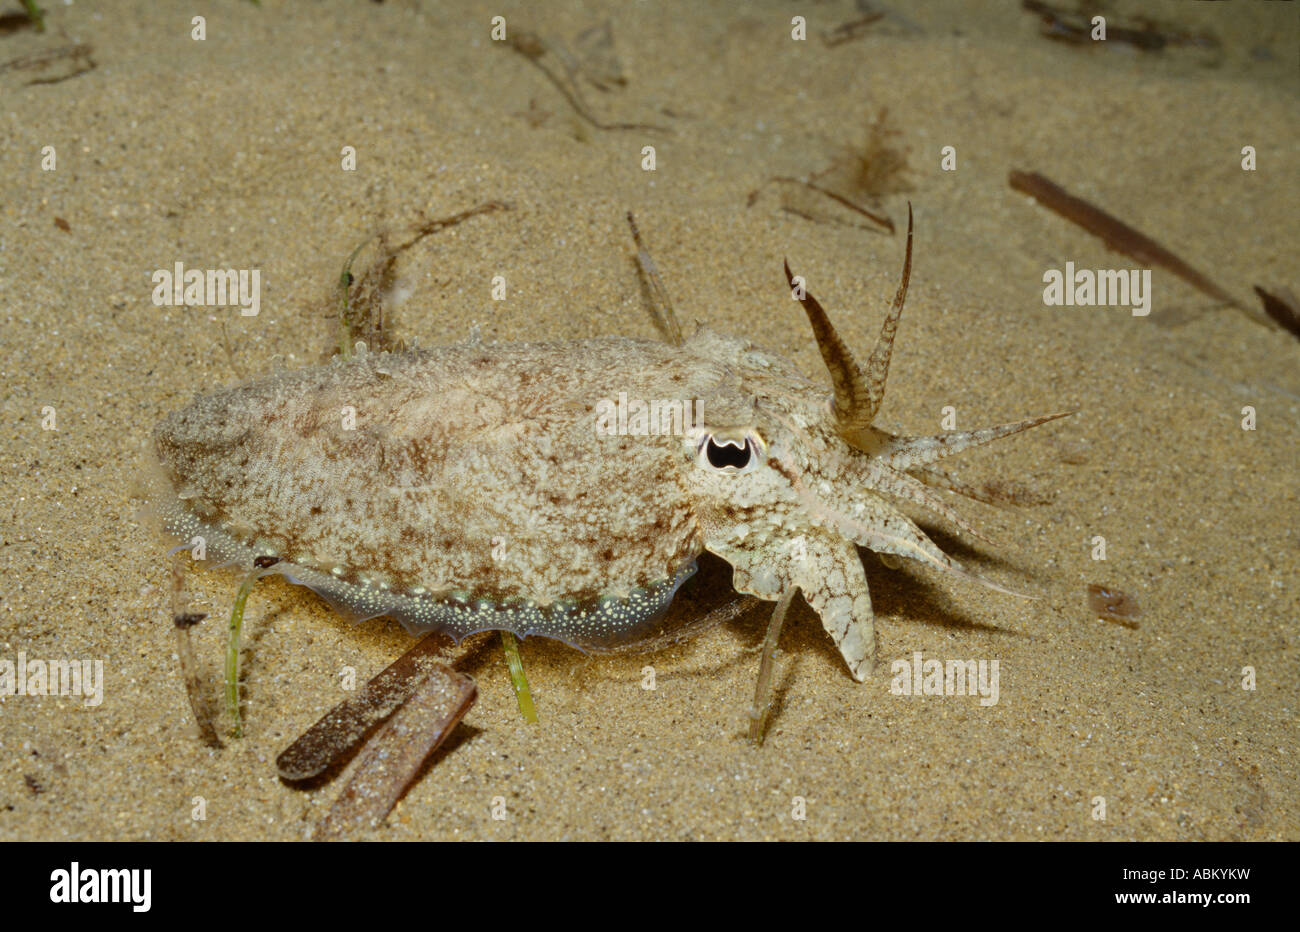 Cuttlefish on the seafloor, Sepia officinalis - Stock Image